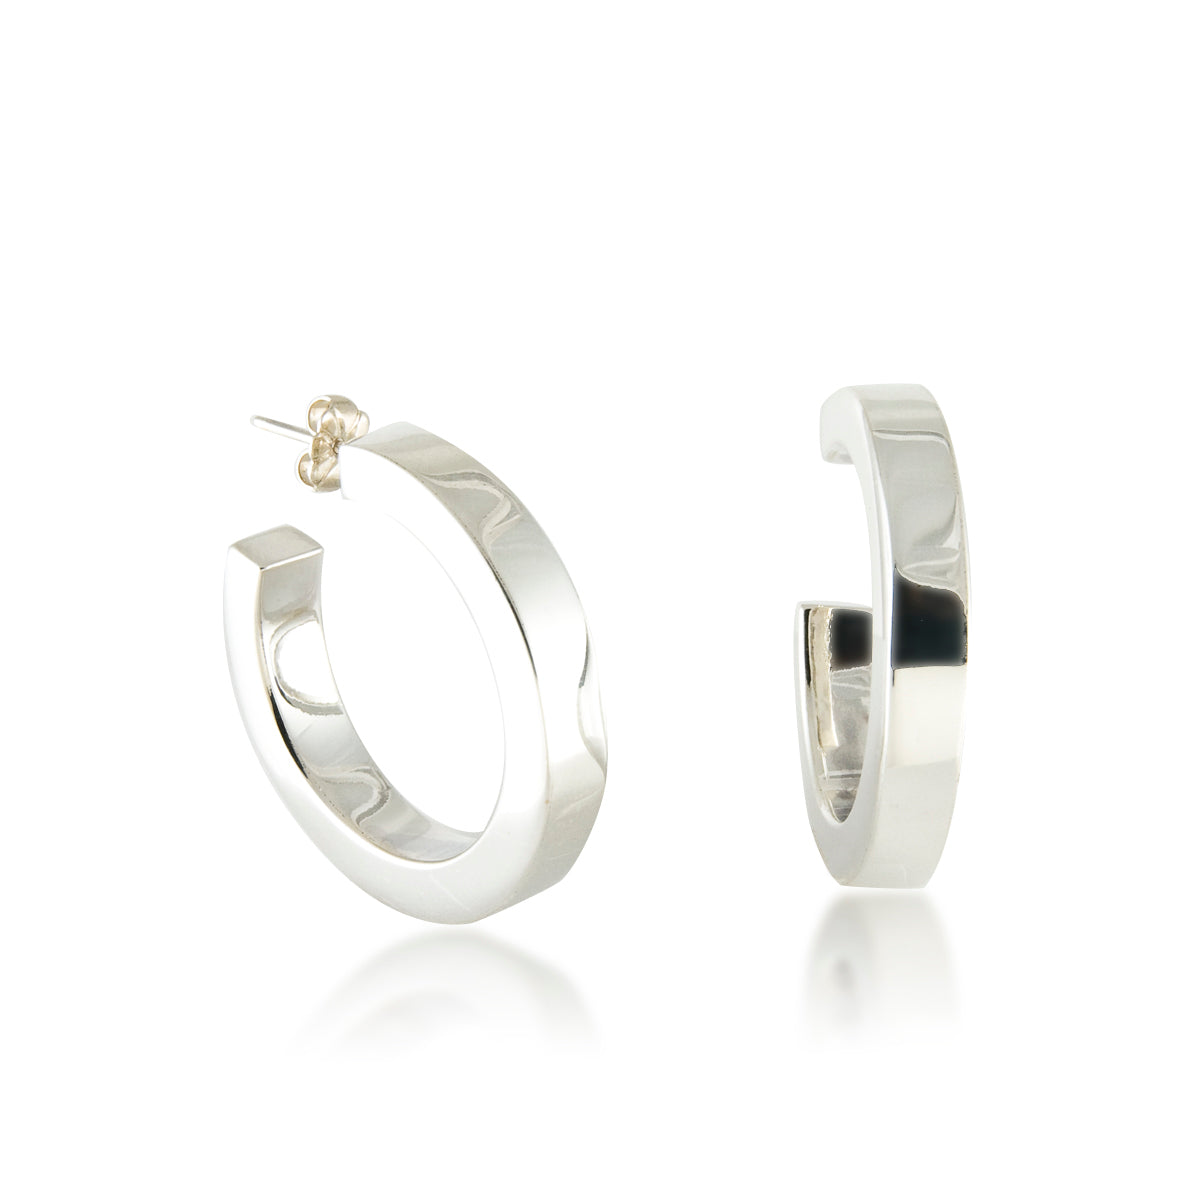 Medium Square Tube Hoop Earrings, Sterling Silver